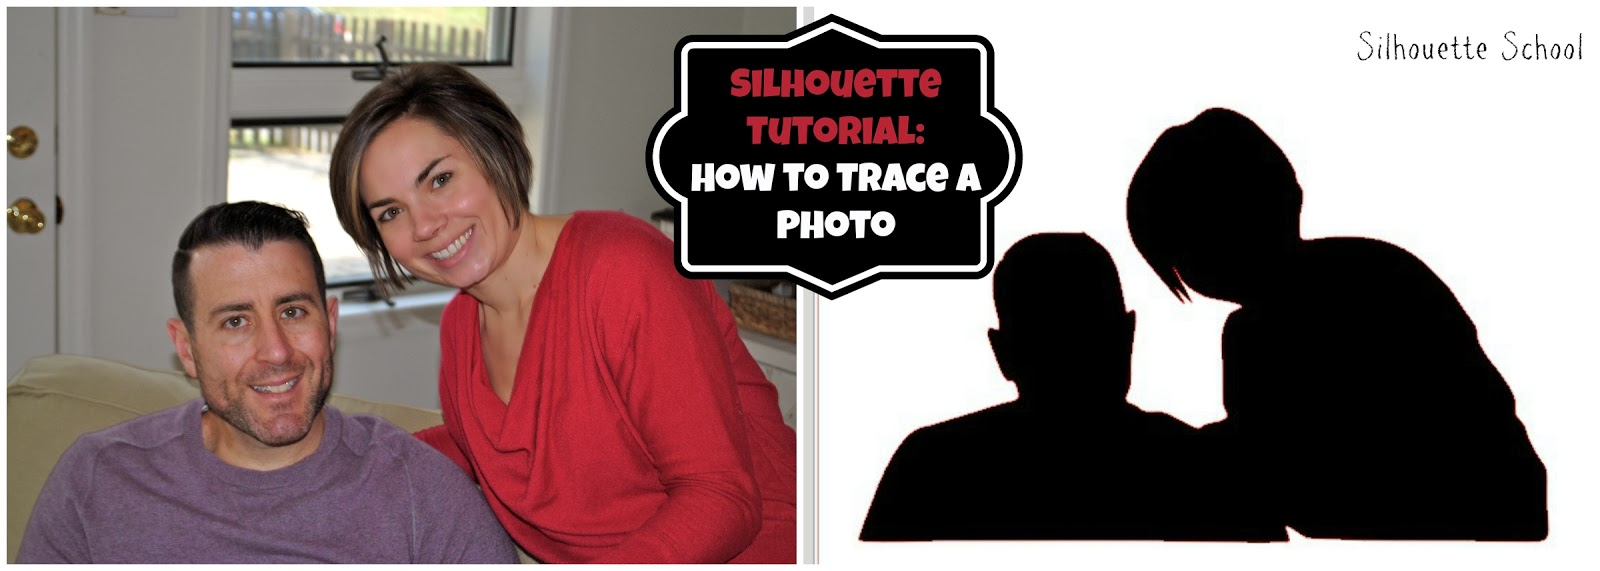 http://silhouetteschool.blogspot.com/2014/02/how-to-trace-photo-in-silhouette-studio.html